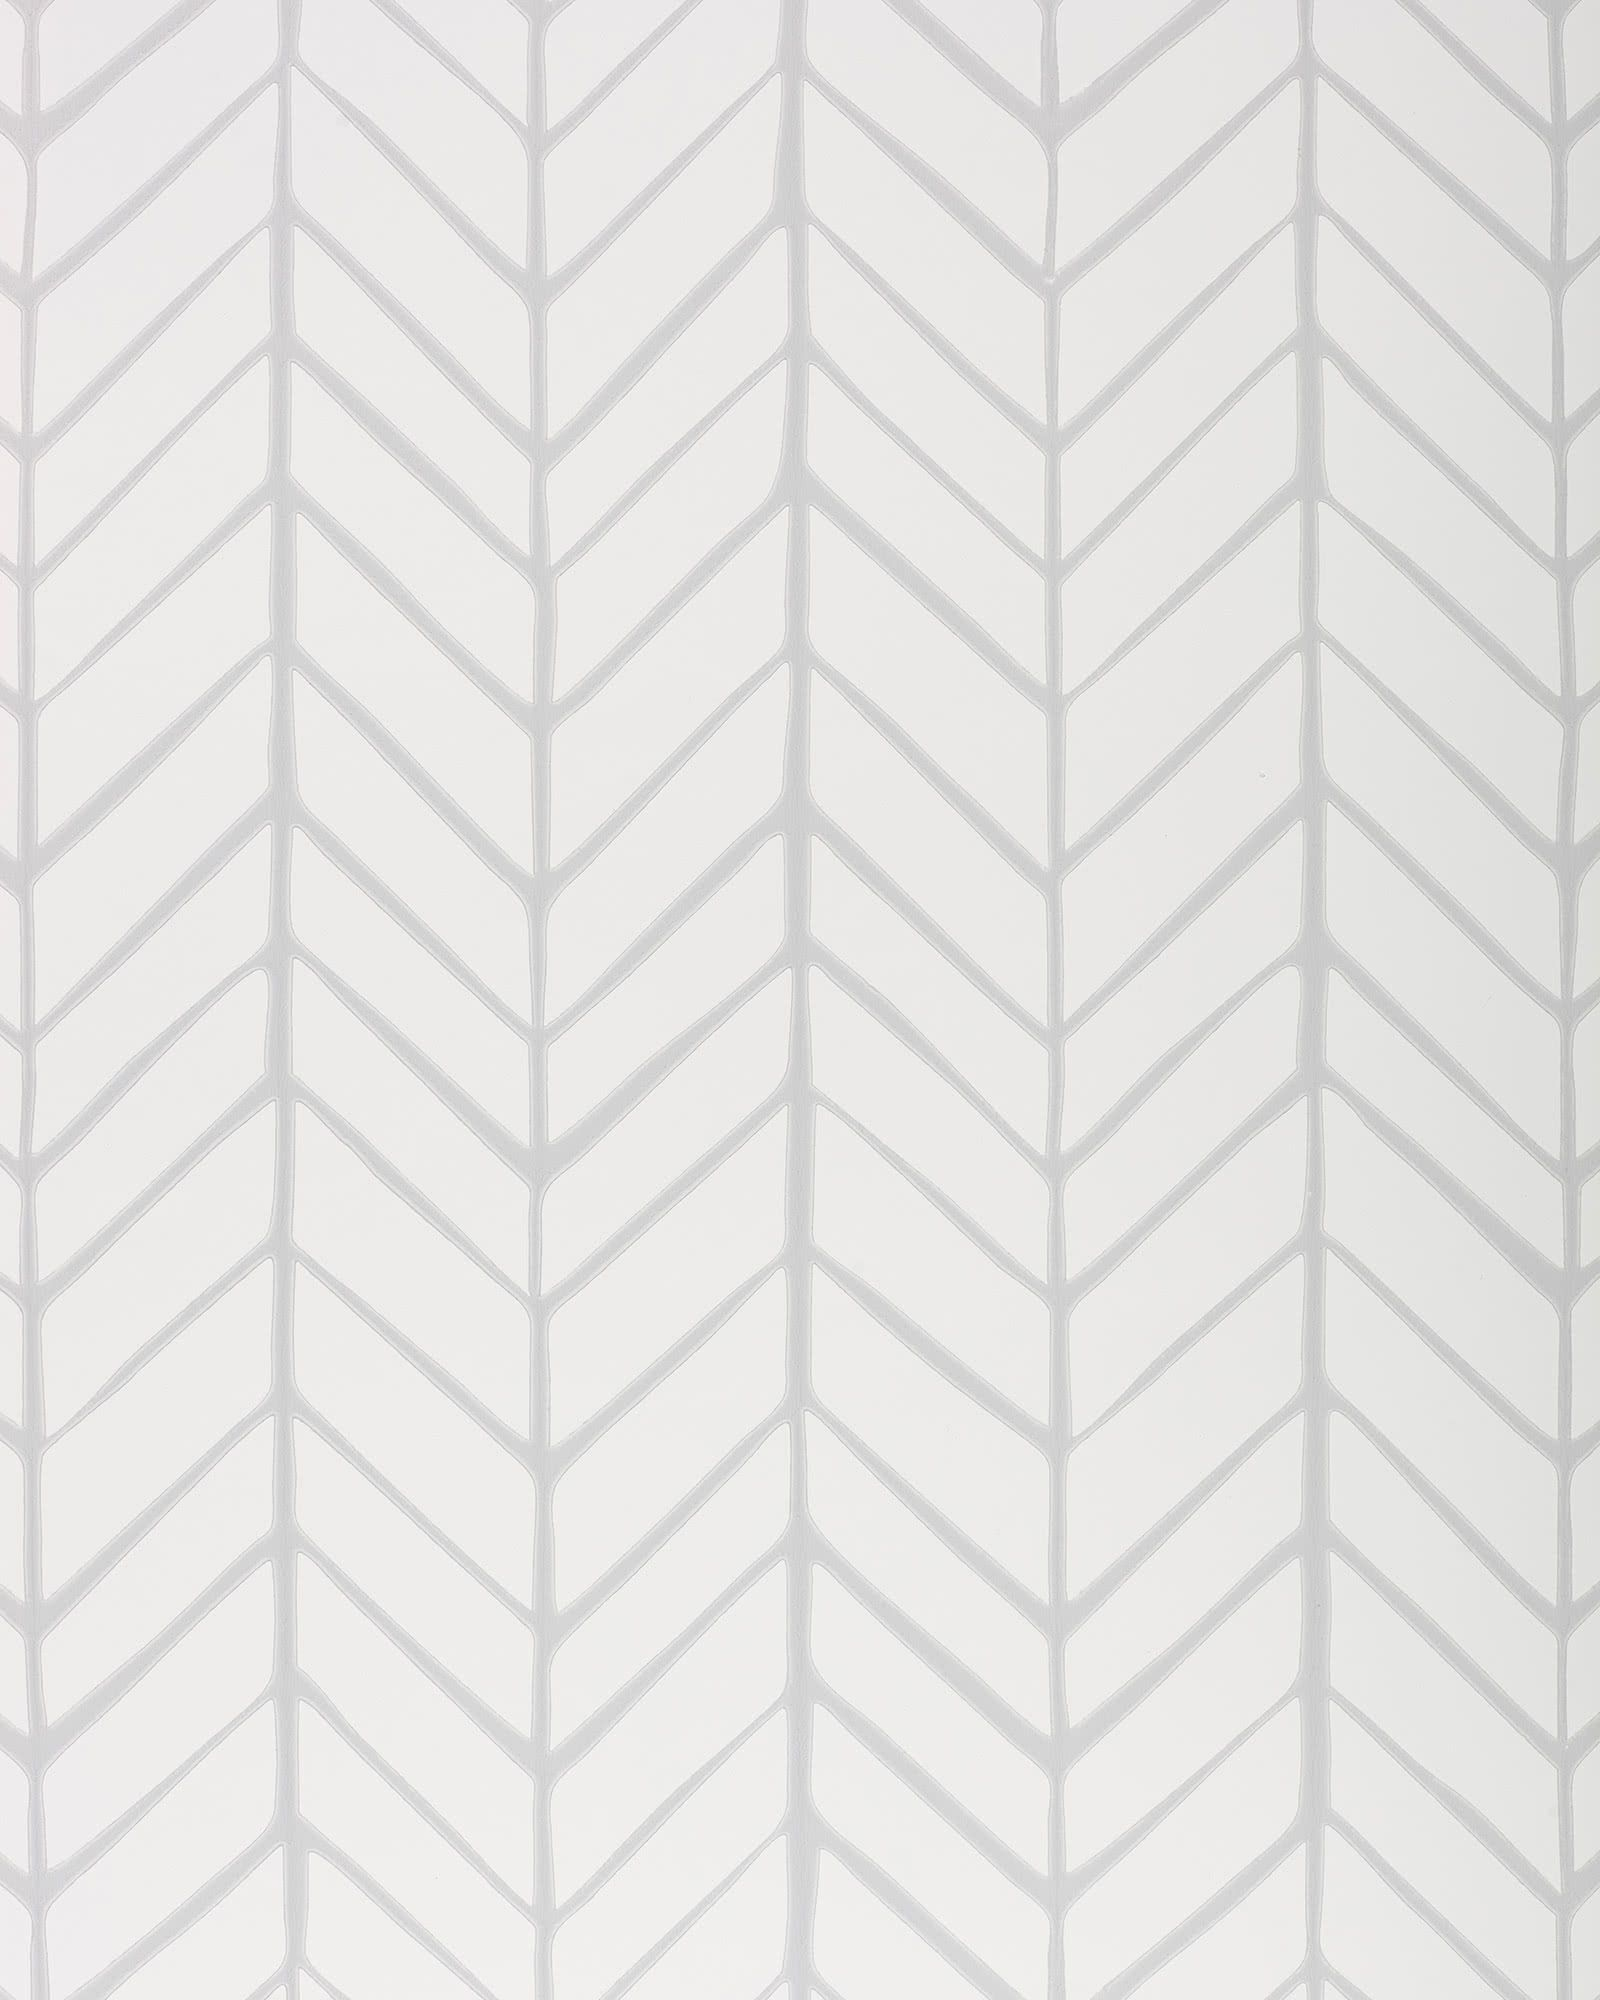 Feather Wallpaper Swatch in 2020 Feather wallpaper